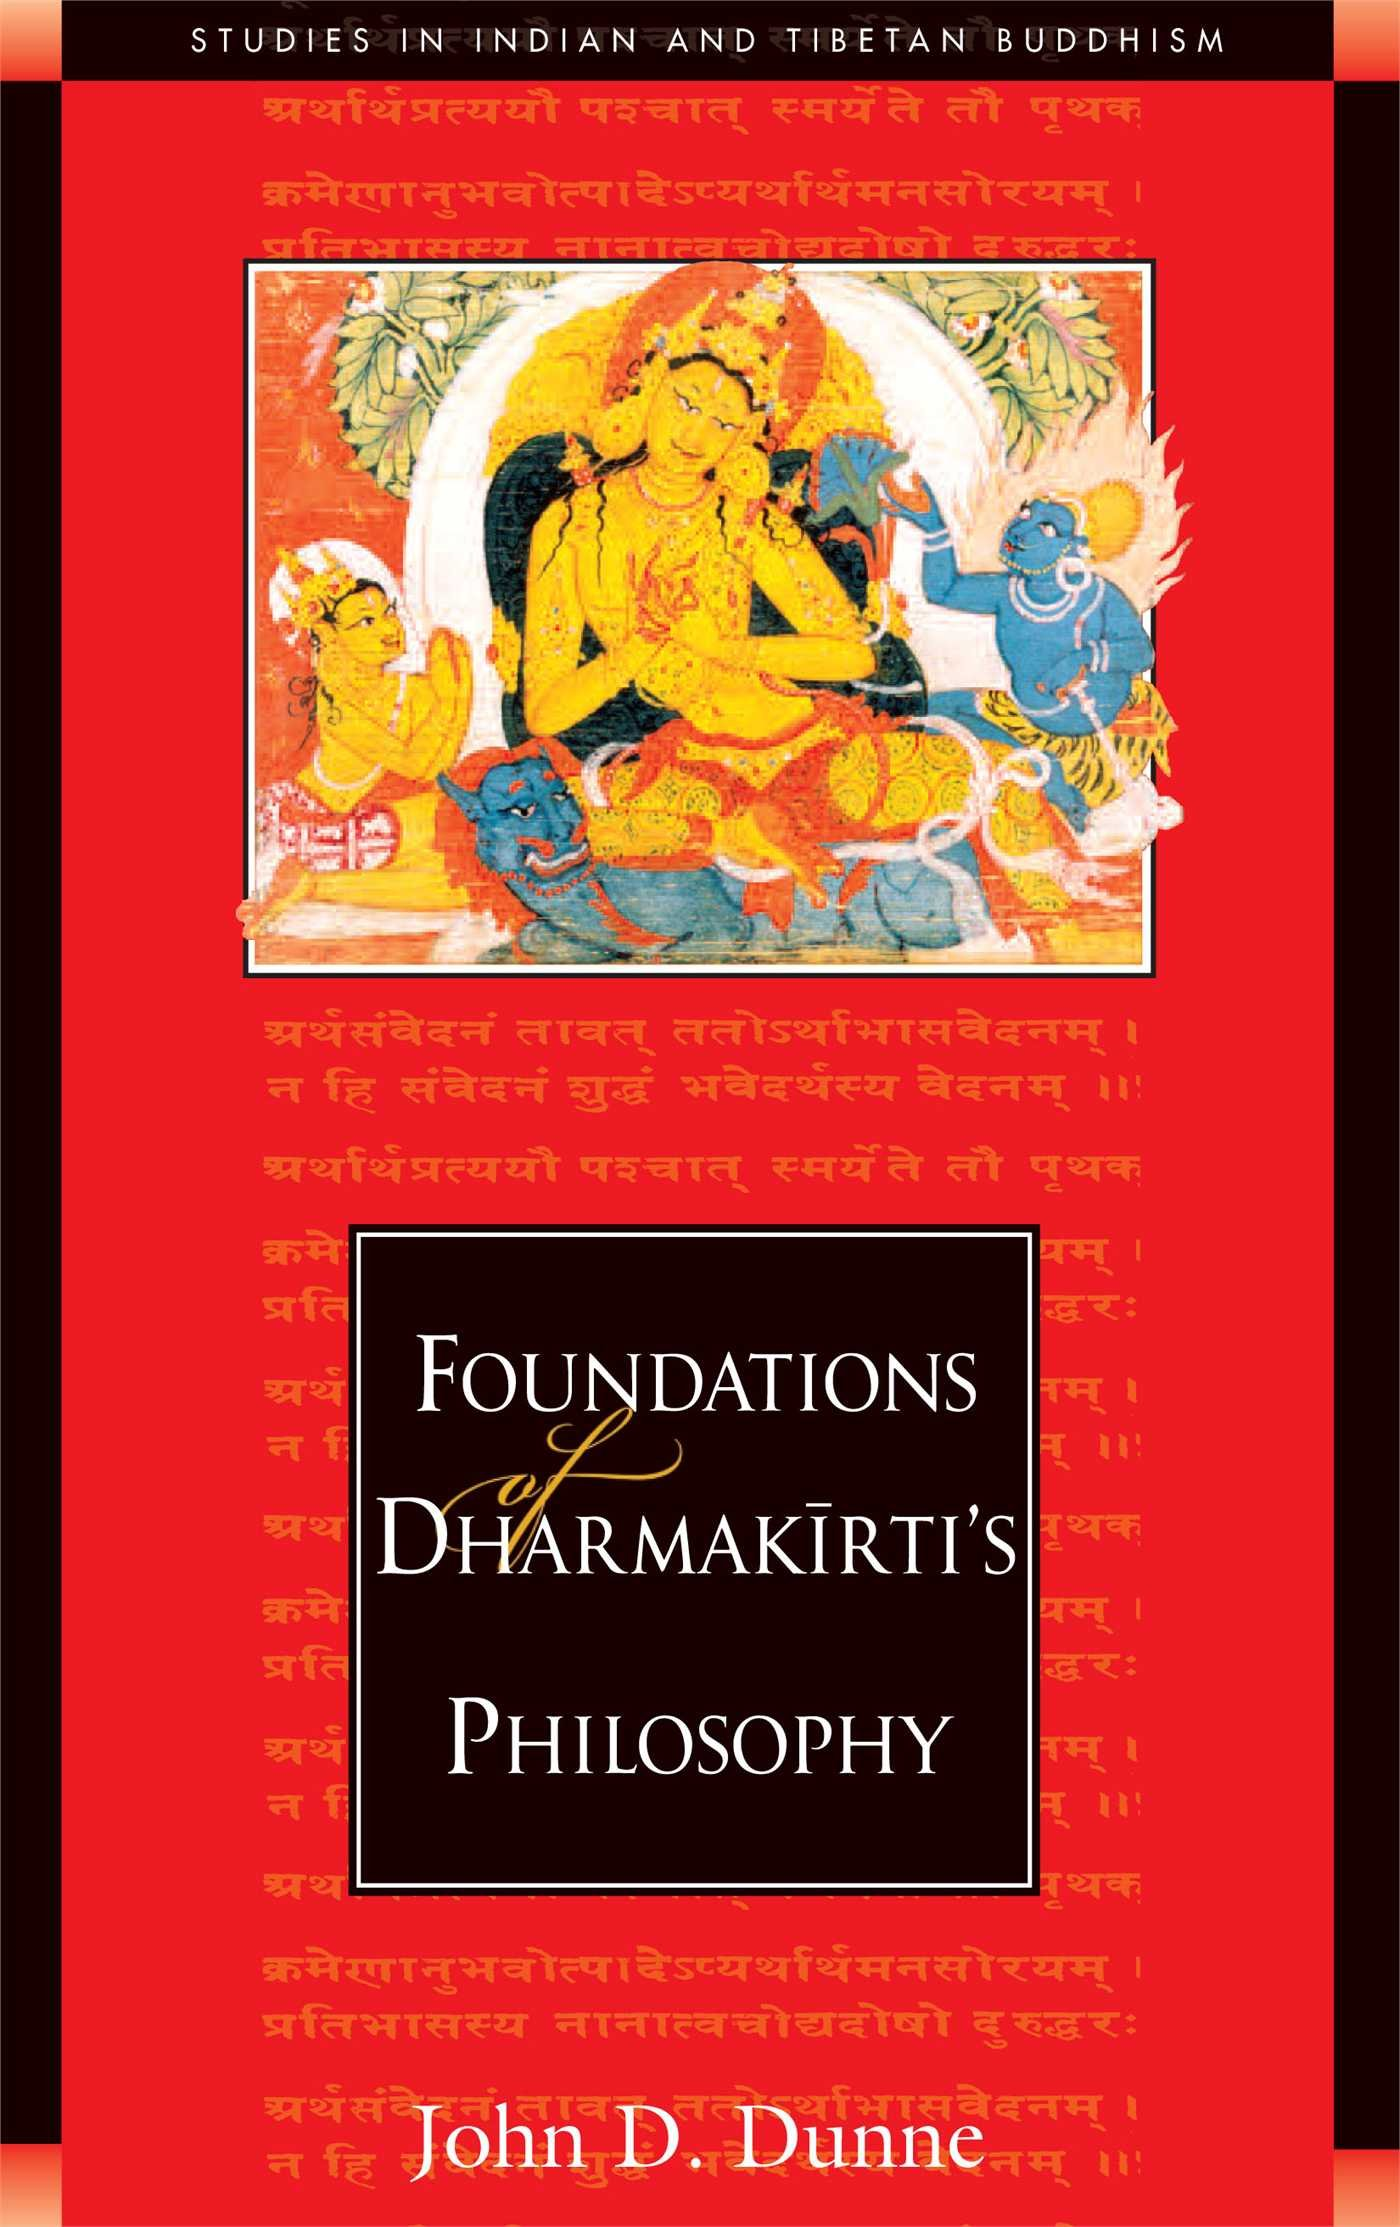 TIBET AWARENESS - THE GREAT MASTERS OF NALANDA - DHARMAKIRTI.